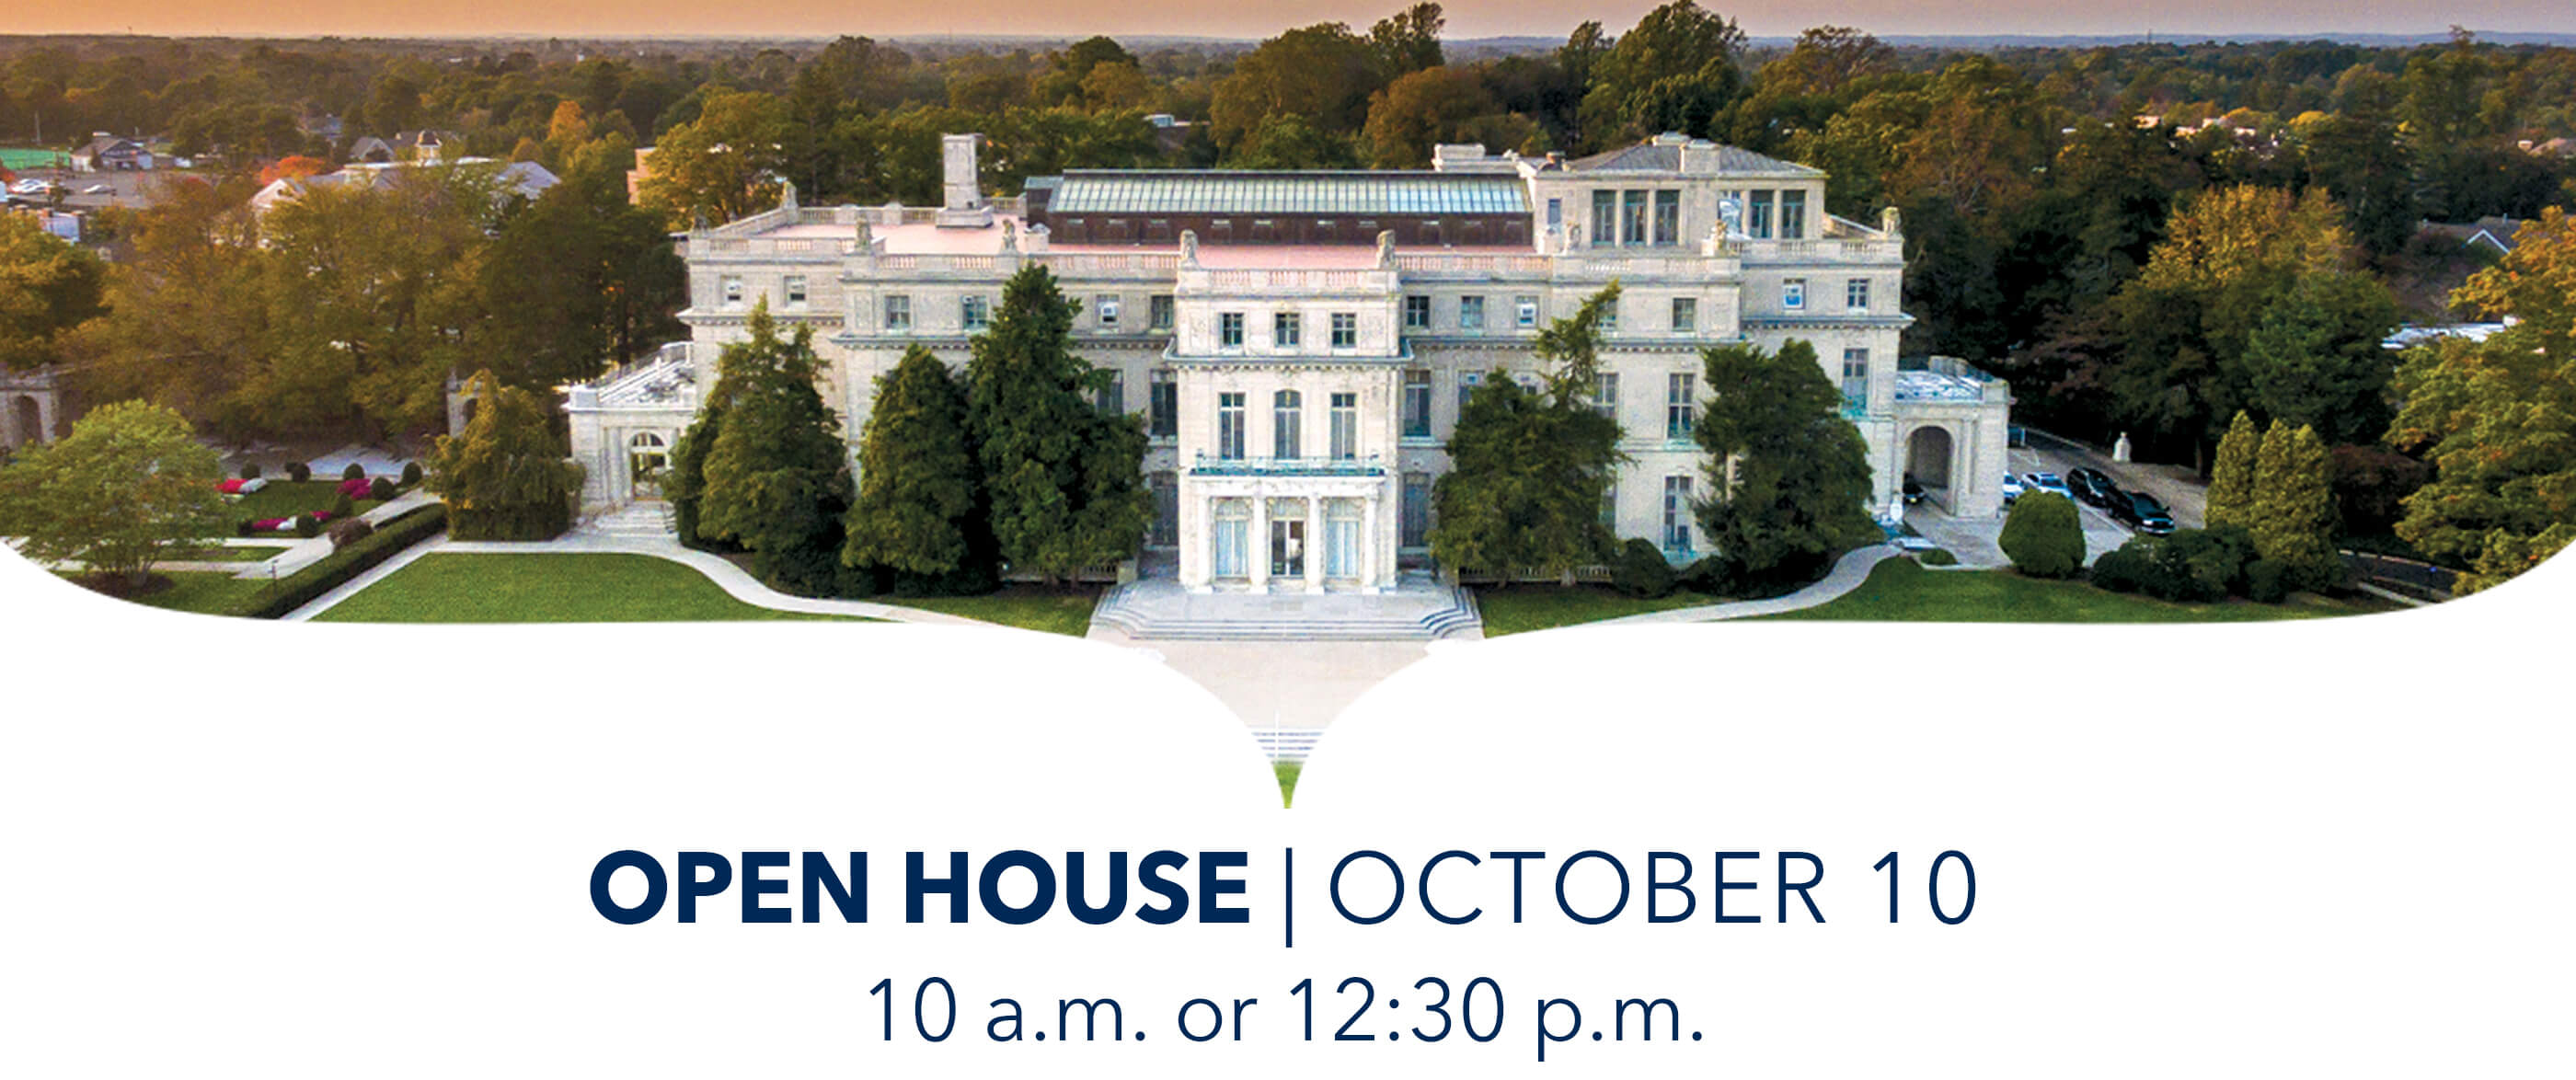 Open House October 10, 10 a.m. or 12:30 p.m.